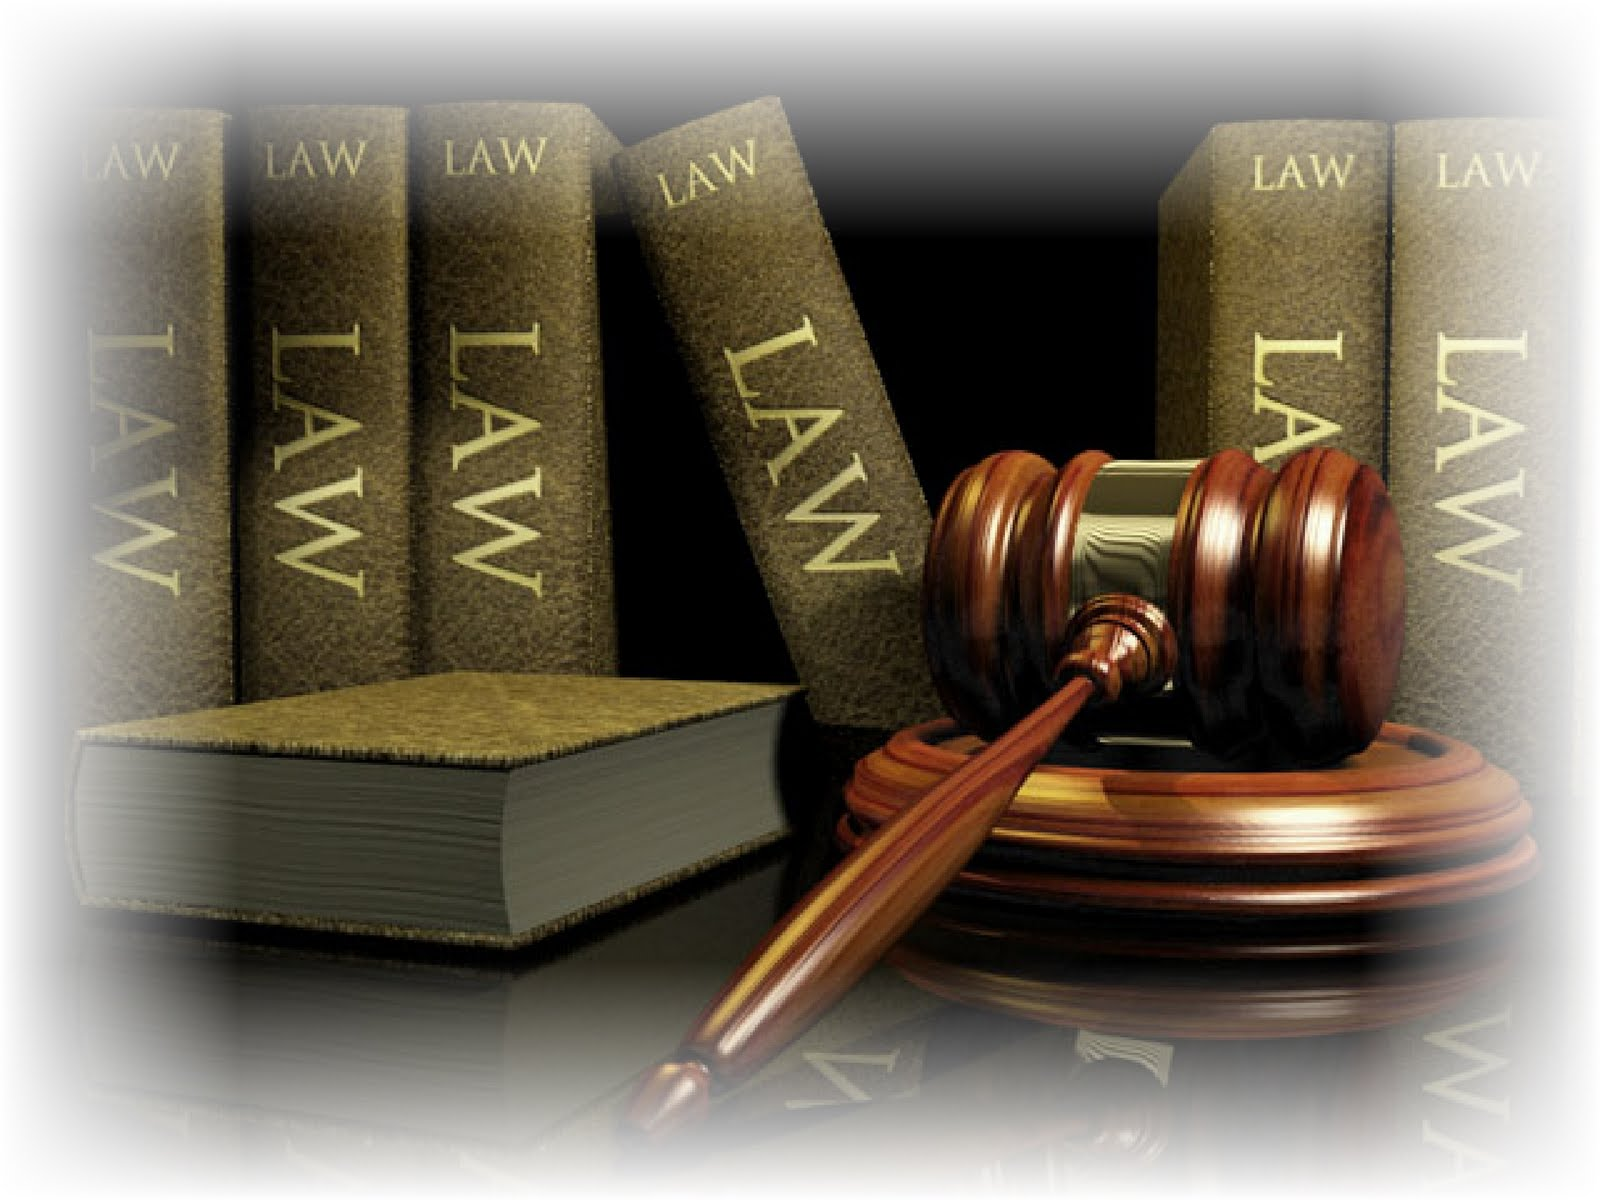 Attorney Meaning Law